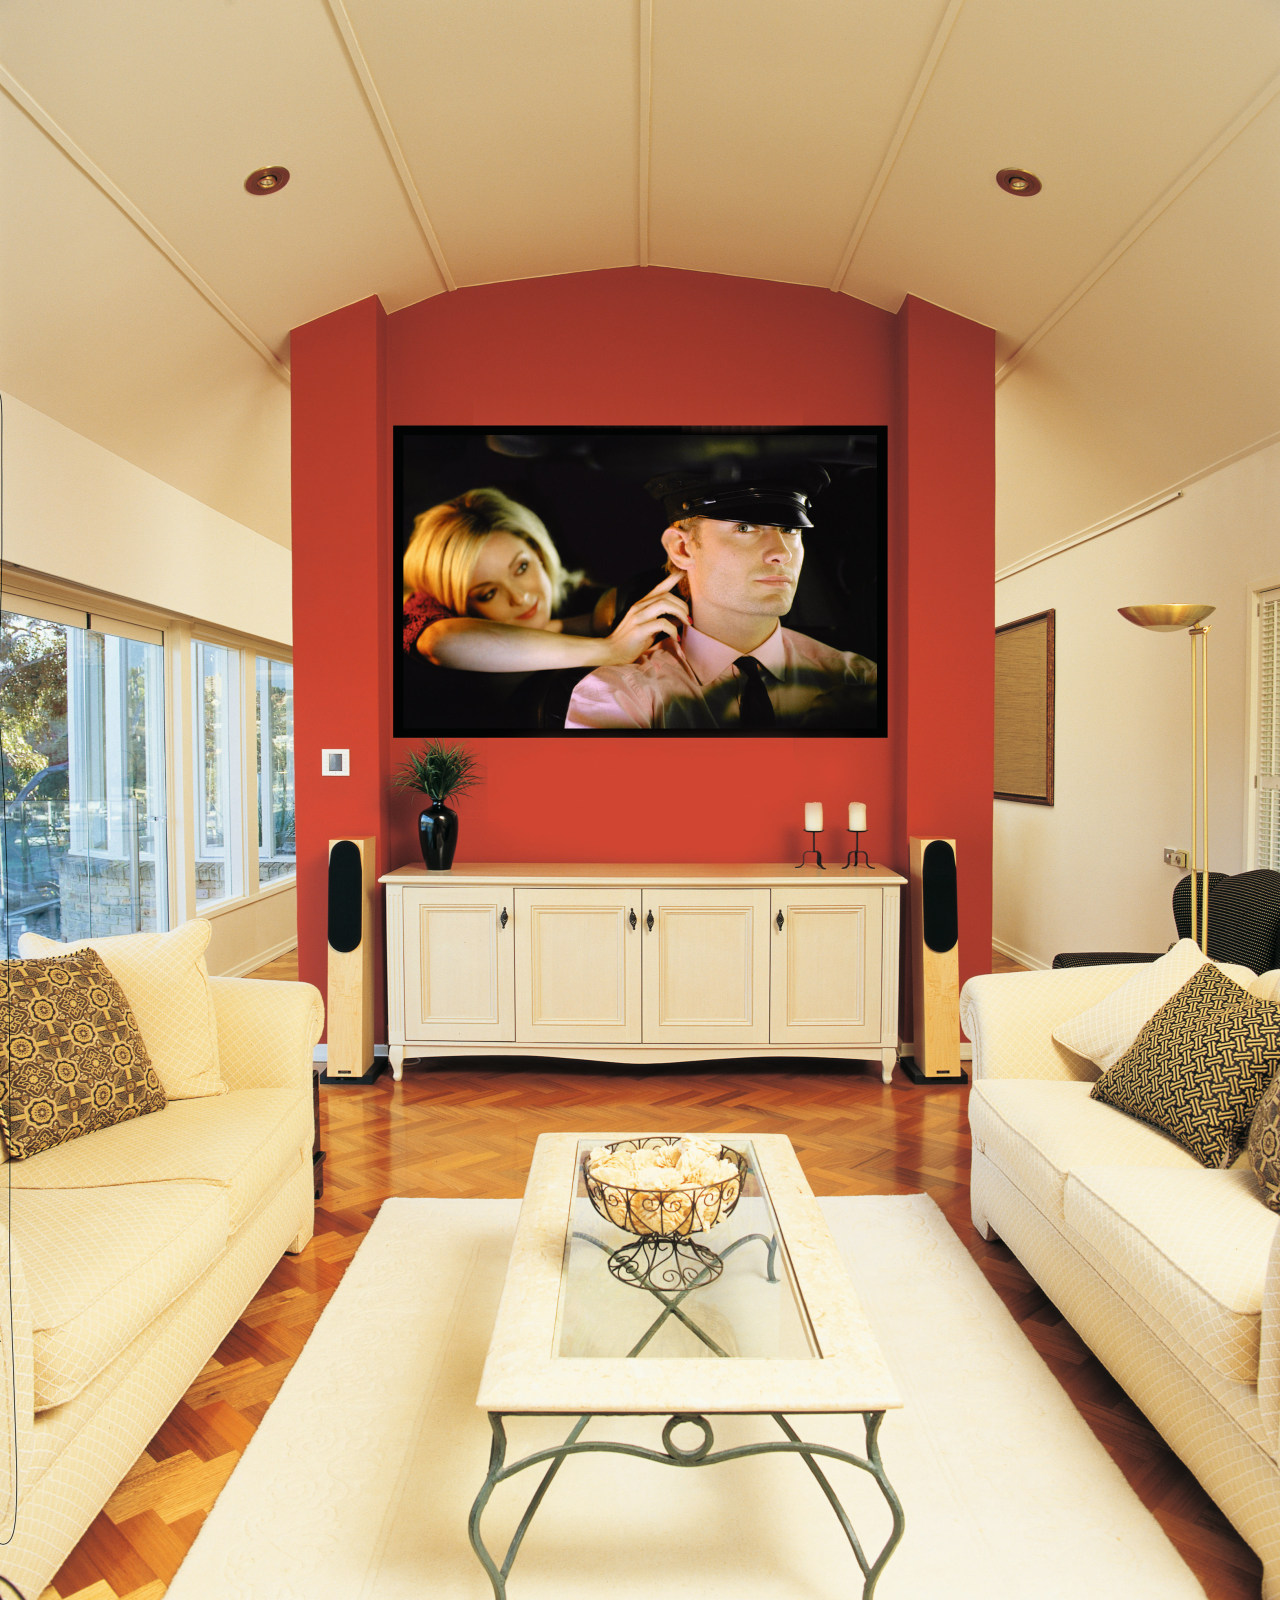 view of the custom designed home theatre and ceiling, furniture, home, interior design, living room, room, wall, orange